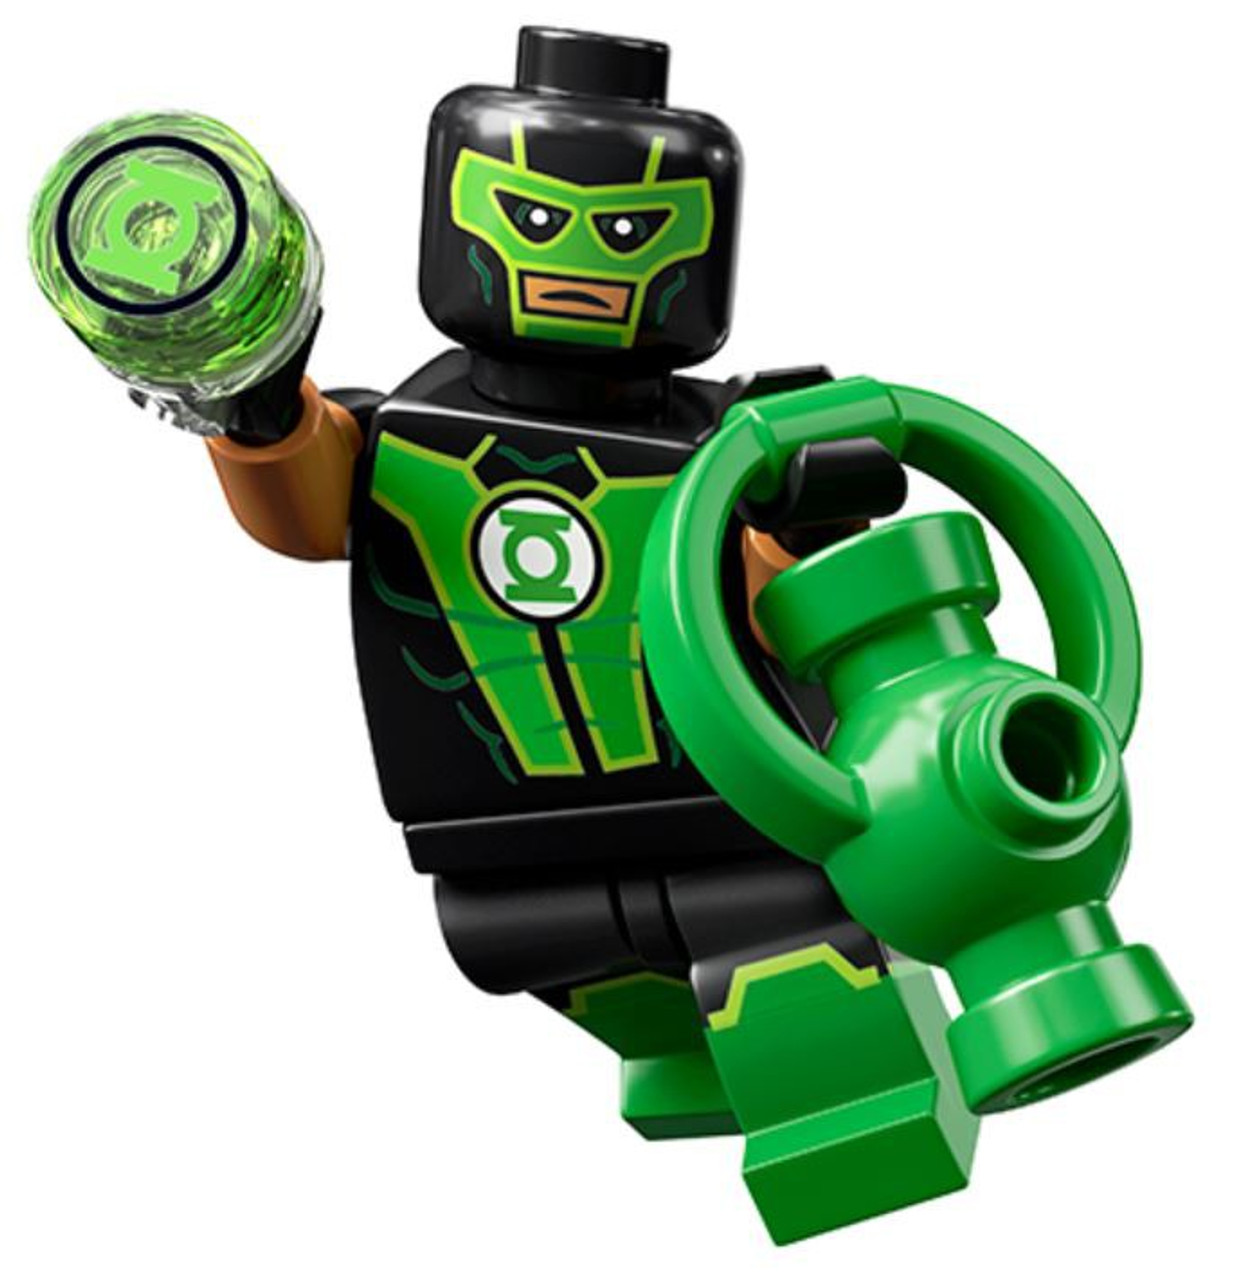 Becoming The Green Lantern In Roblox Roblox Adventures Superhero Lego Dc Super Heroes Simon Baz Green Lantern Minifigure 71026 Loose Toywiz